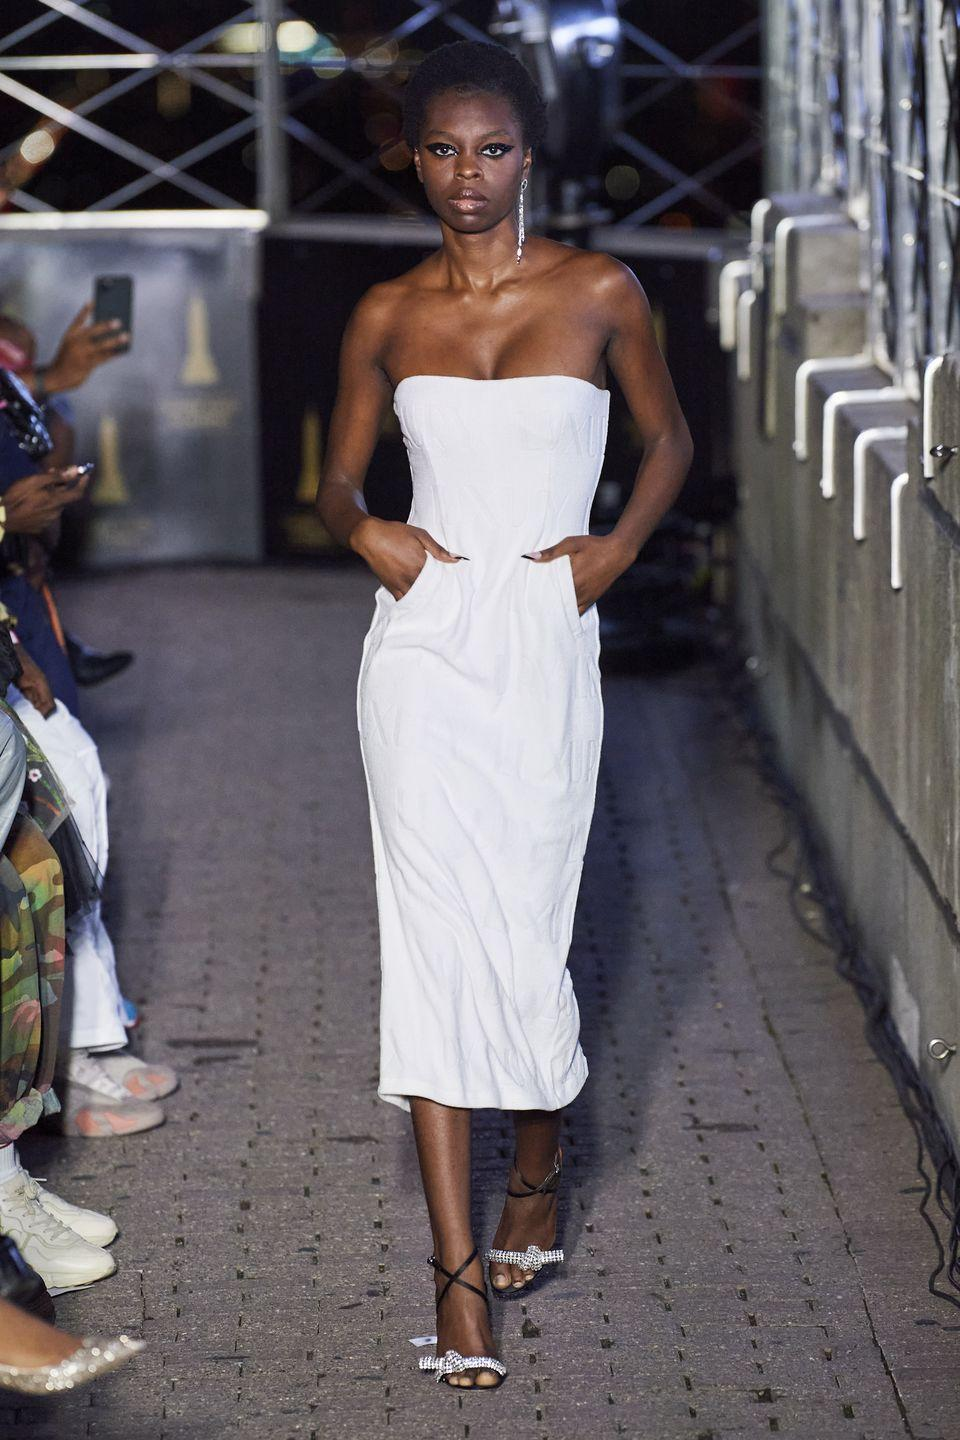 <p>Known for his daring dresses which have won over fans including Beyoncé, Kim Kardashian and Rihanna, LaQuan Smith did not disappoint in delivering some eveningwear drama in his SS22 that we will no doubt see on the red carpet over the next few months.</p>